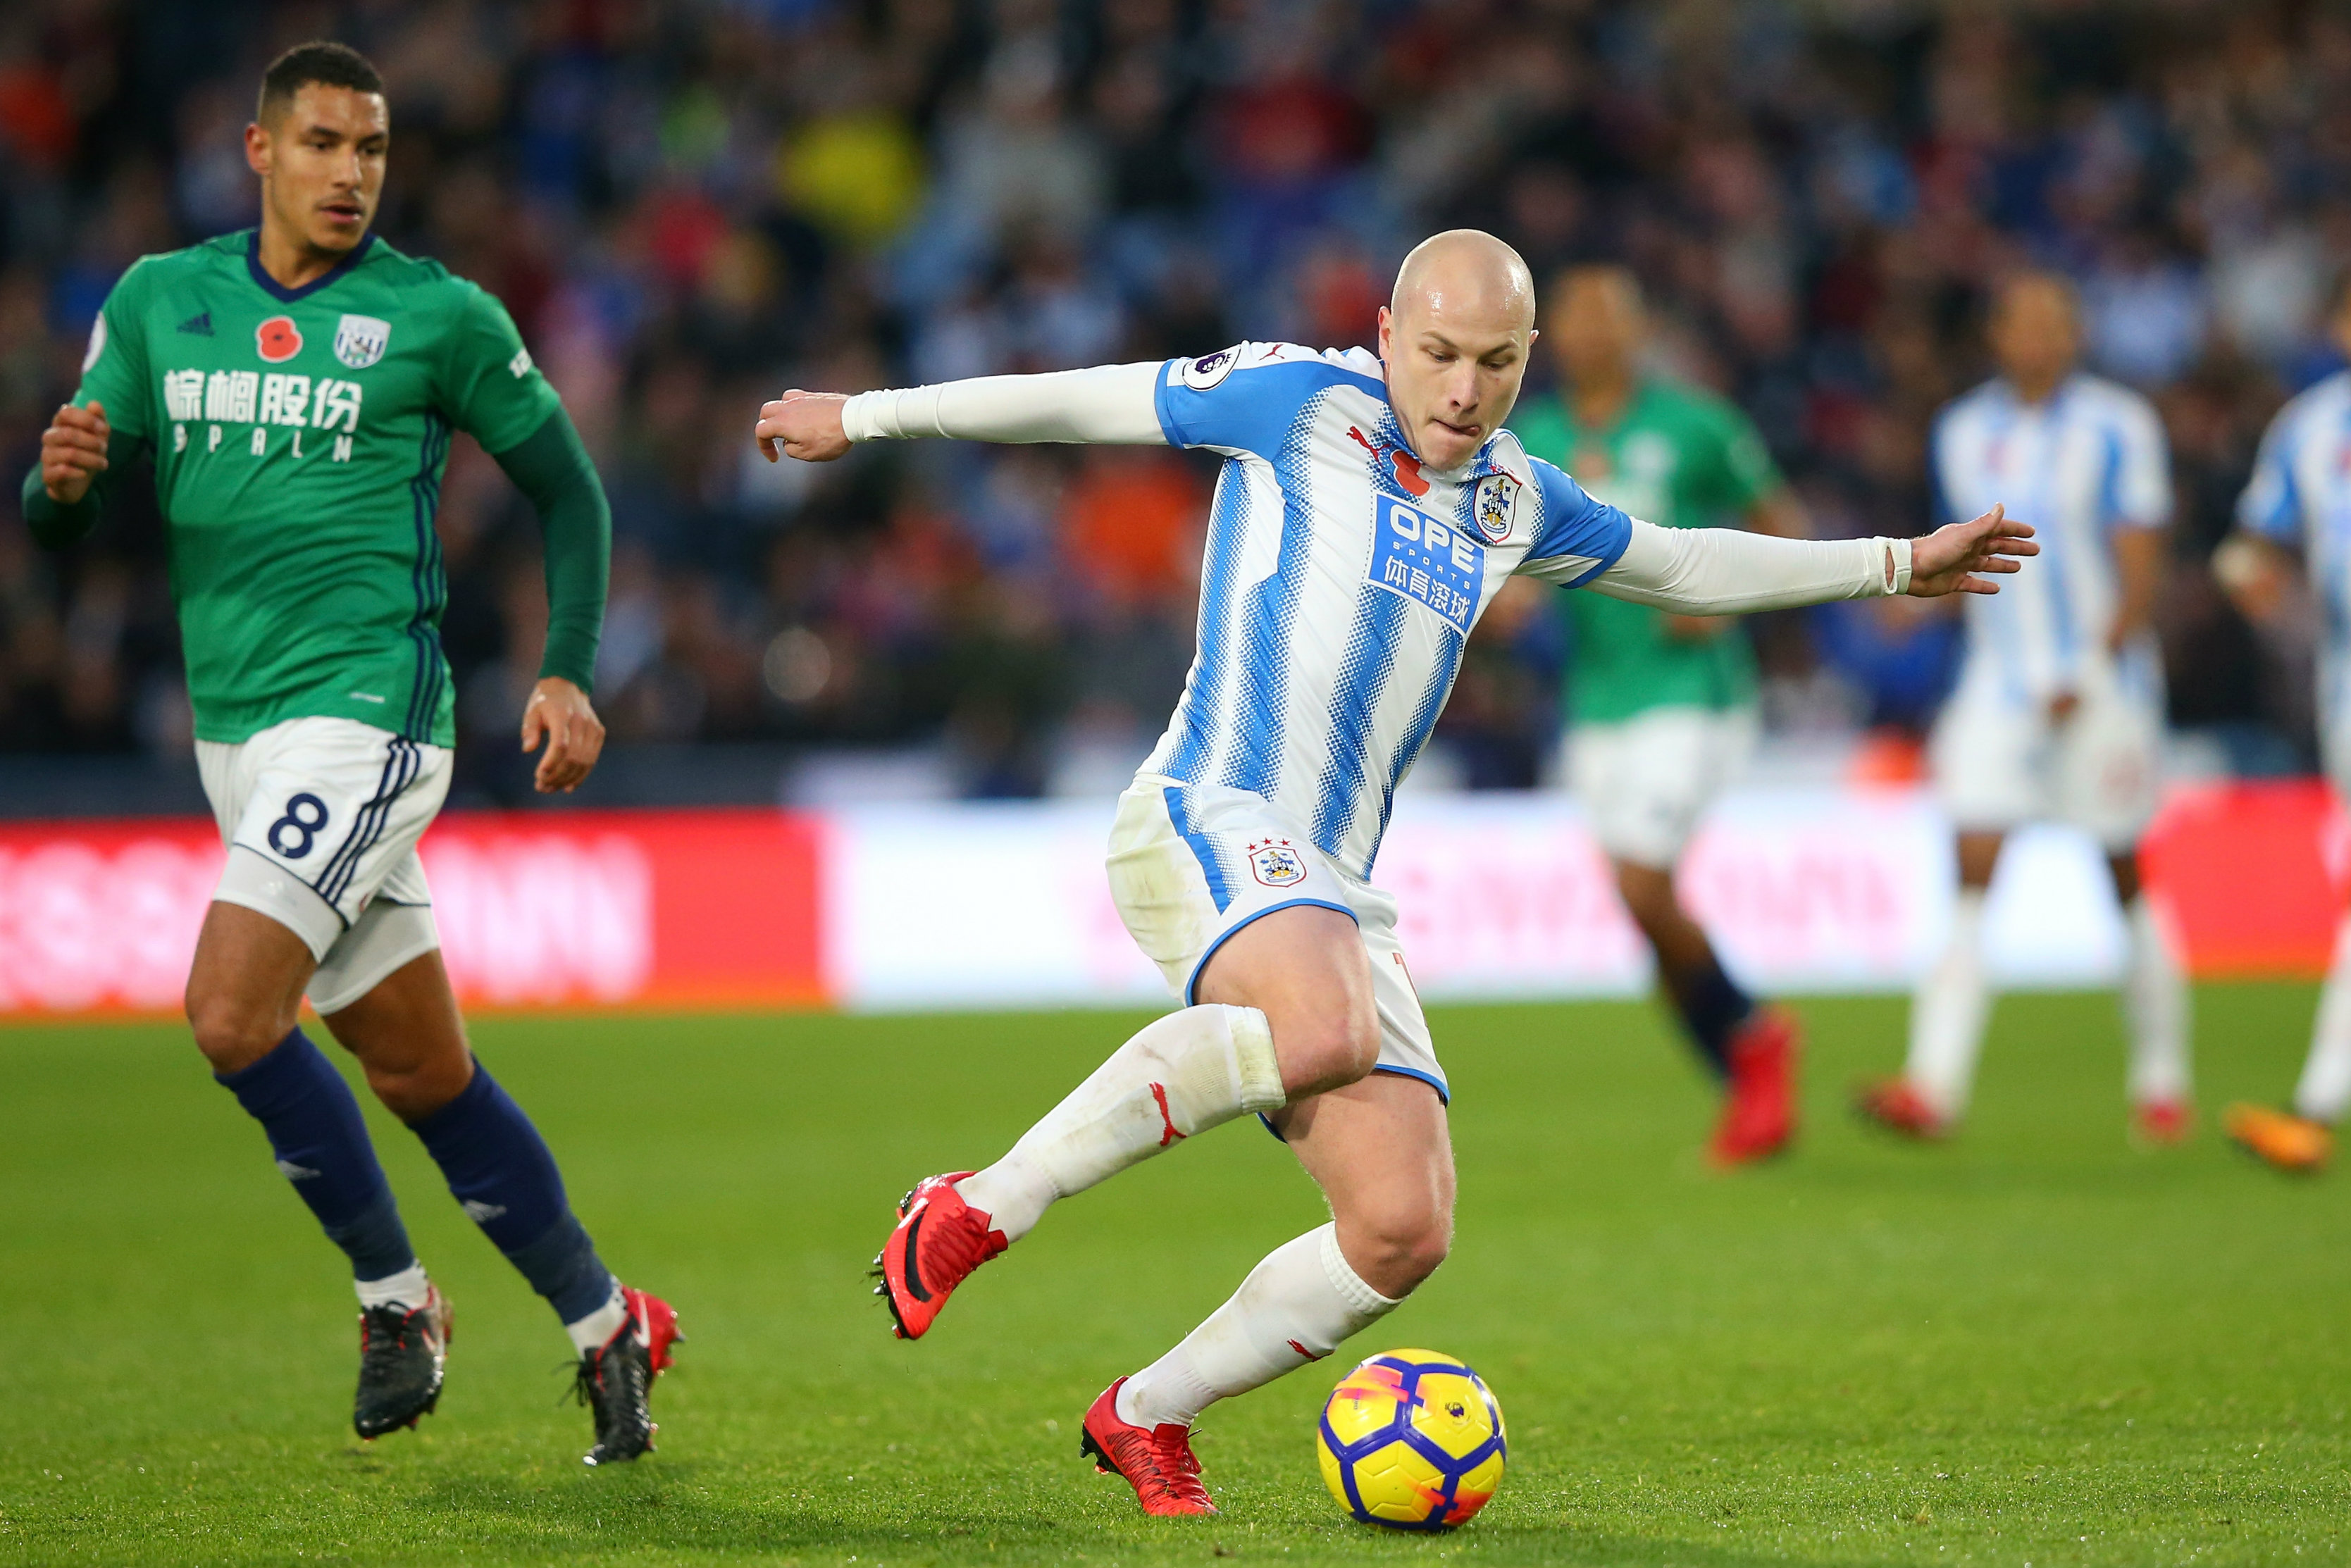 Aaron Mooy on the ball in Huddersfield's win over West Brom.